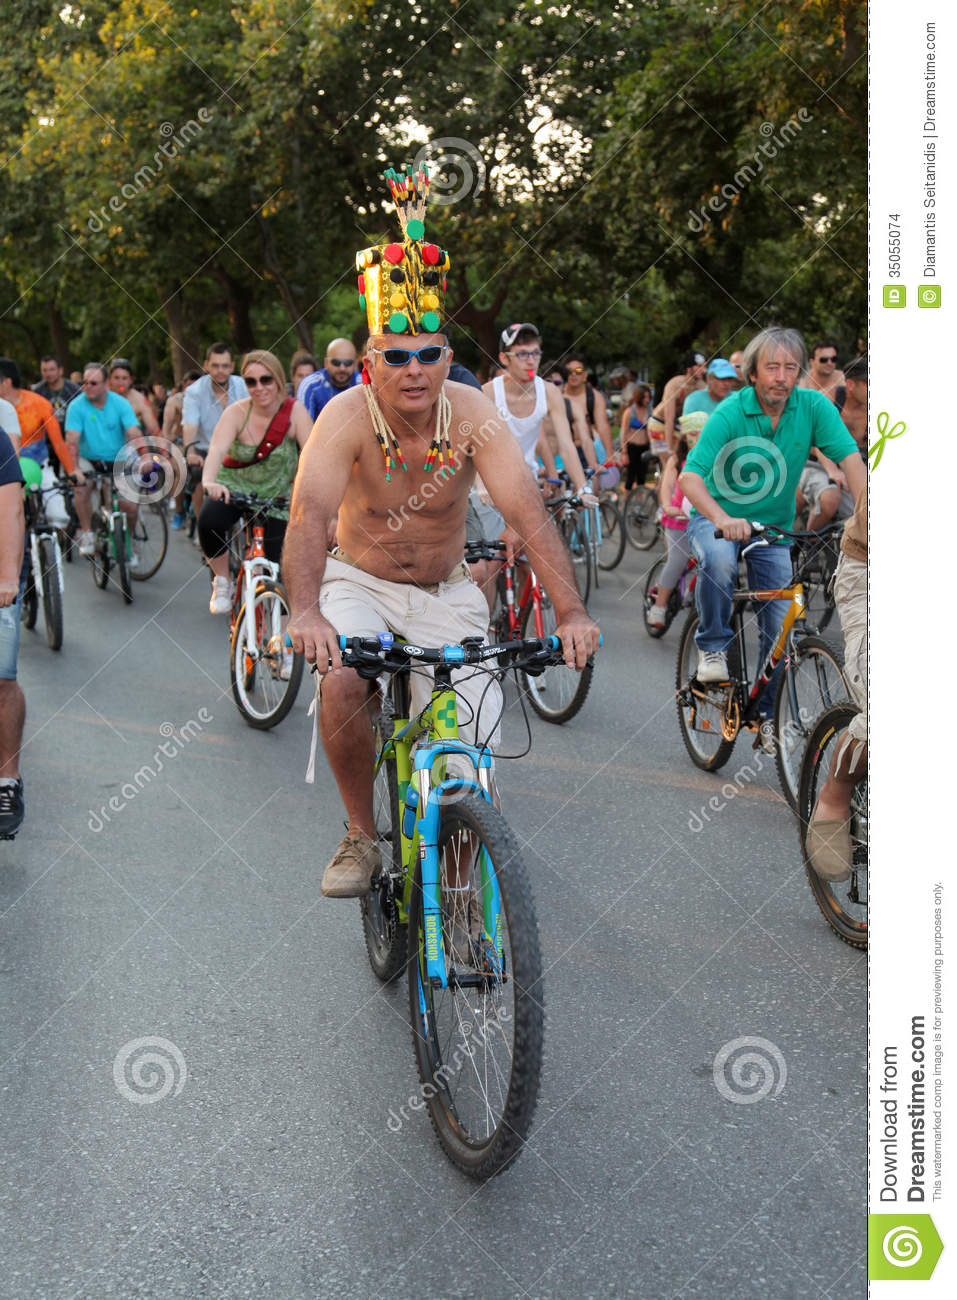 Naked bicycle race in Thessaloniki - Greece